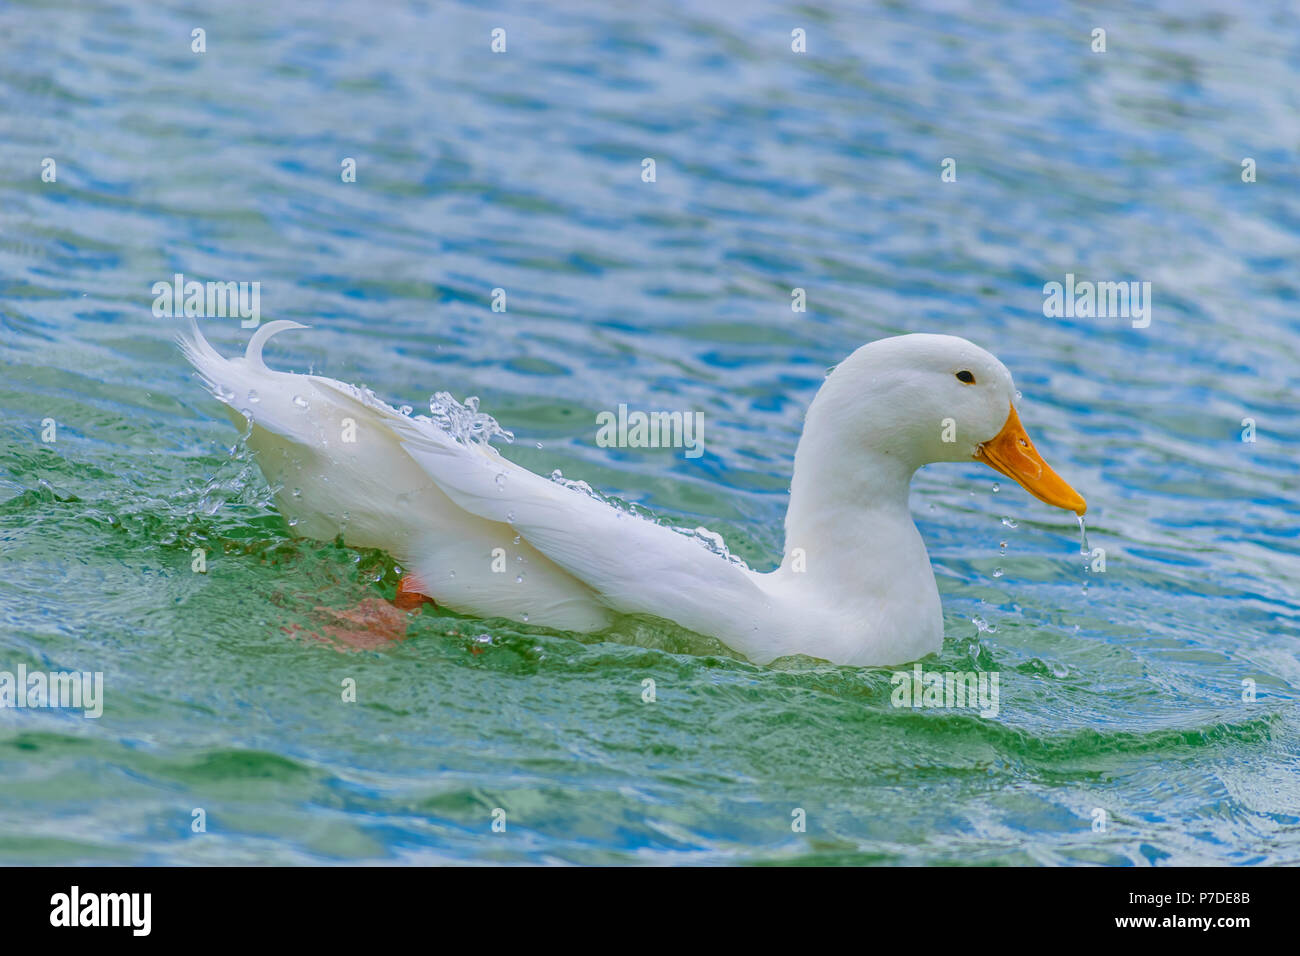 White Pekin Duck swimming in a lake on a summer day in Florida. - Stock Image